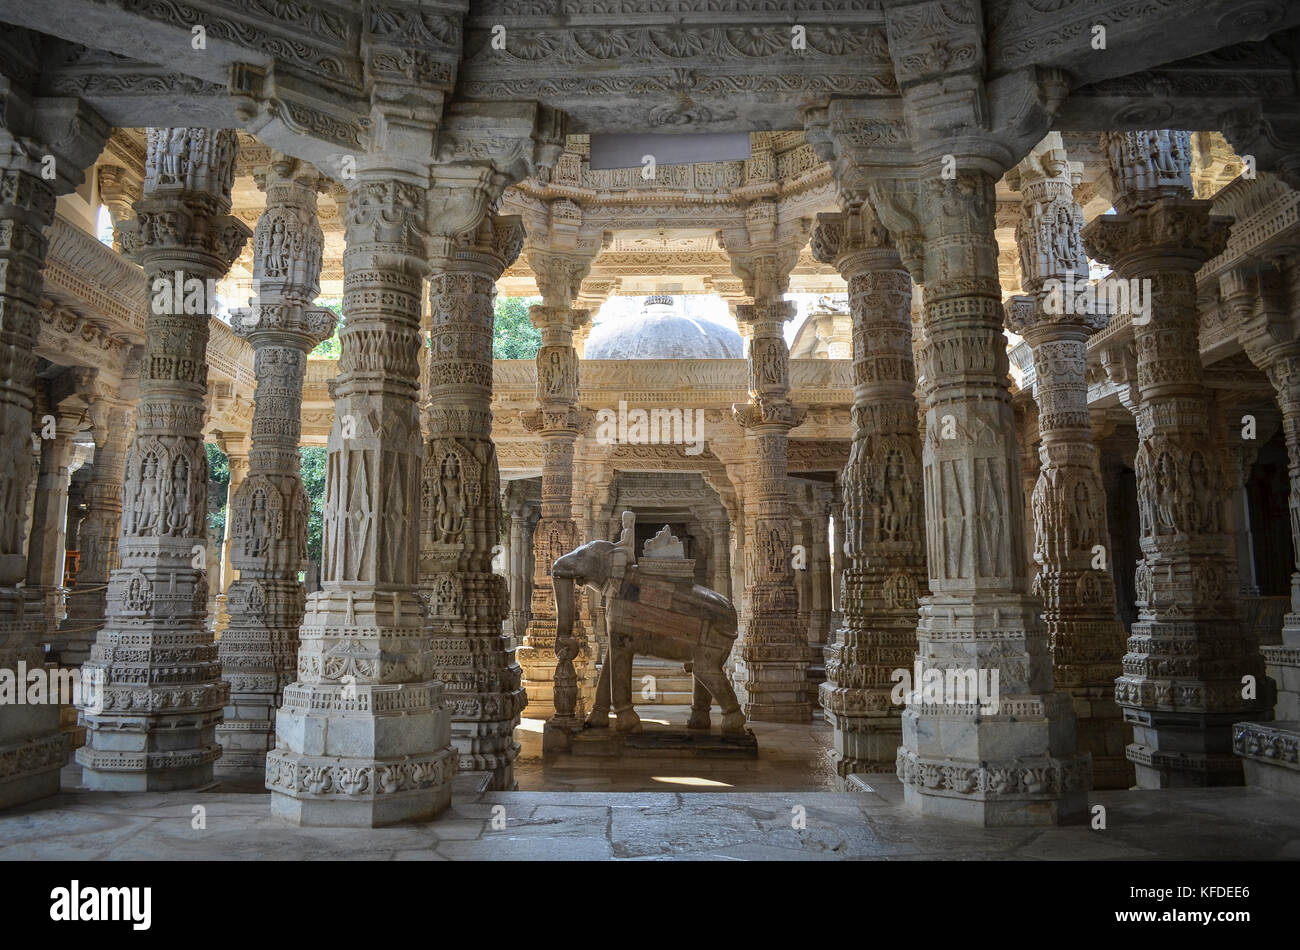 Interior view of Ranakpur Jain Temple, Ranakpur. Carvings and marble columns and a statue of an elephant. - Stock Image